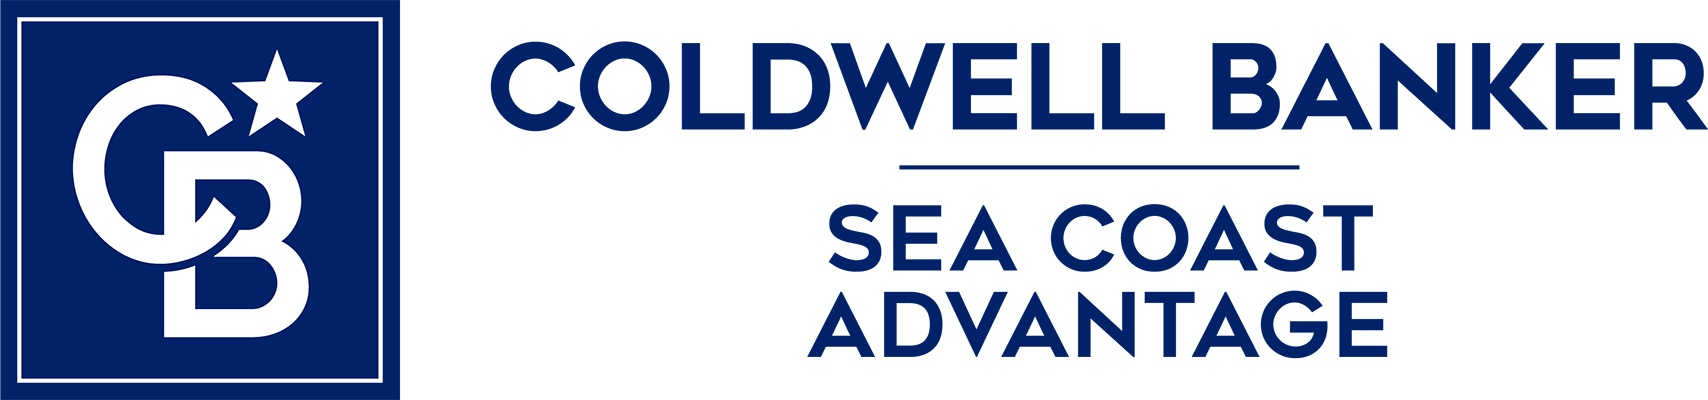 Joy Williams - Coldwell Banker Sea Coast Advantage Realty